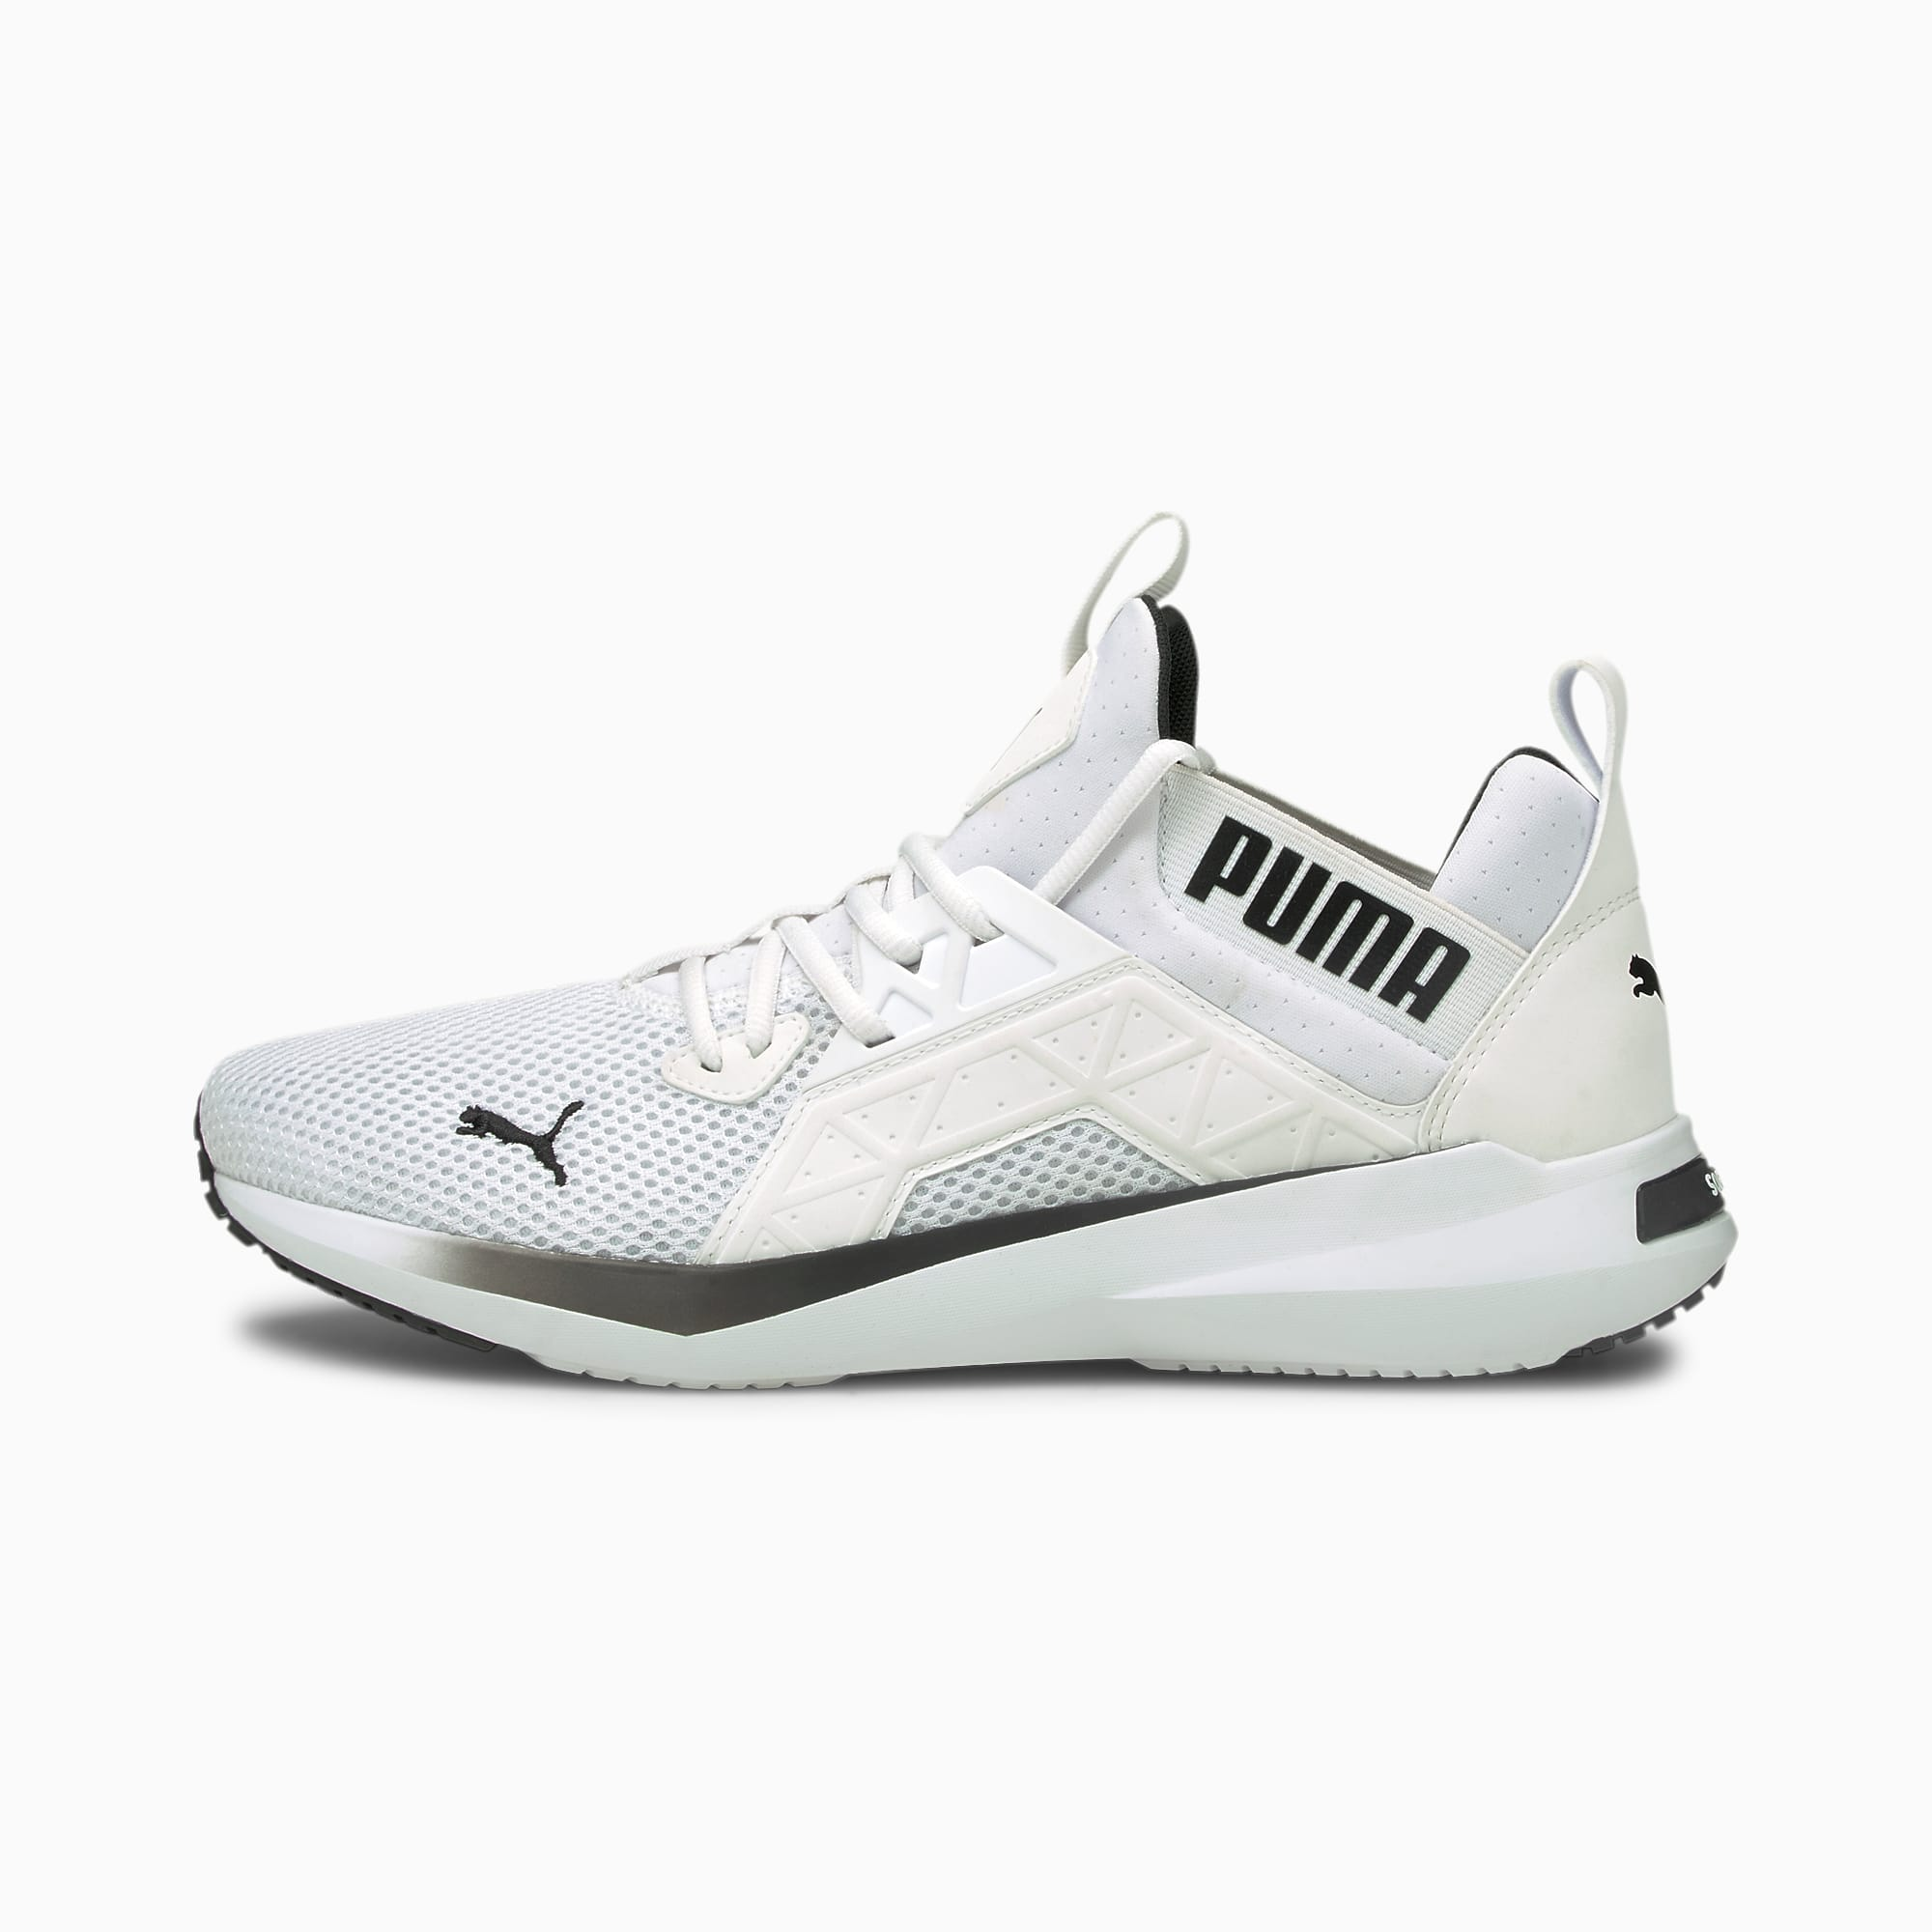 Softride Enzo NXT Fade Men's Running Sneakers